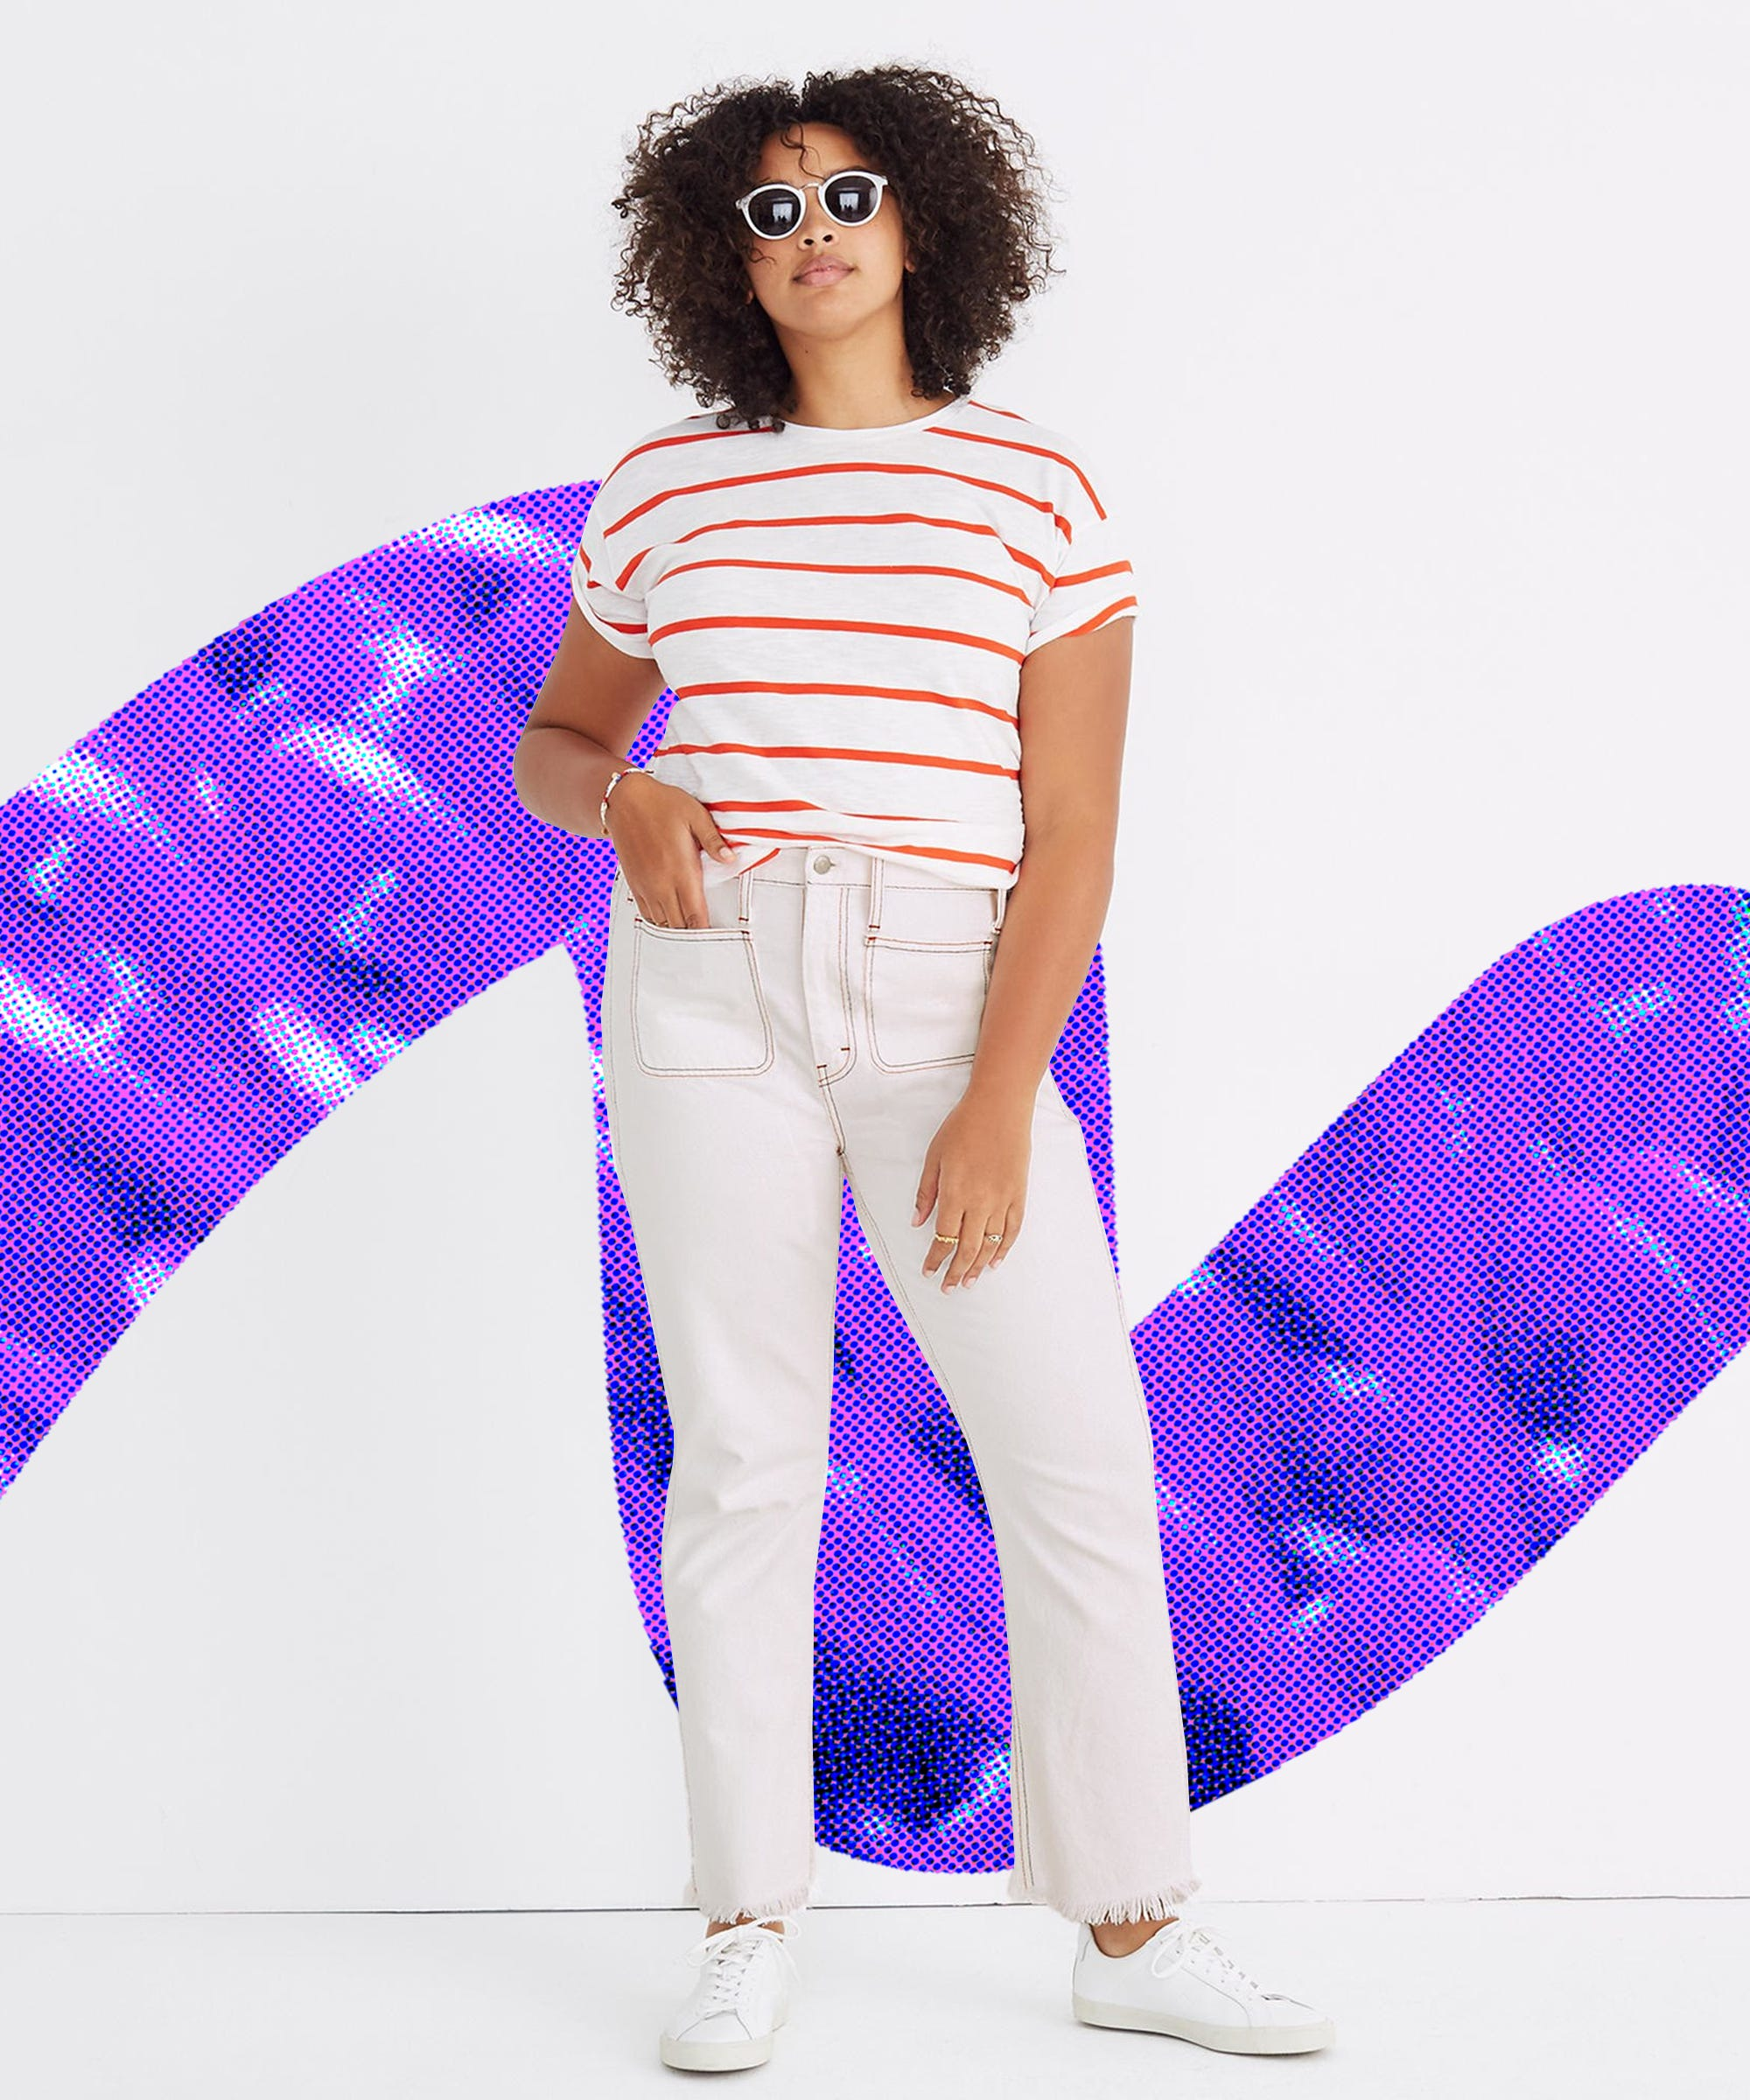 23 Of The Best White Jeans For Pre- & Post-Labor Day